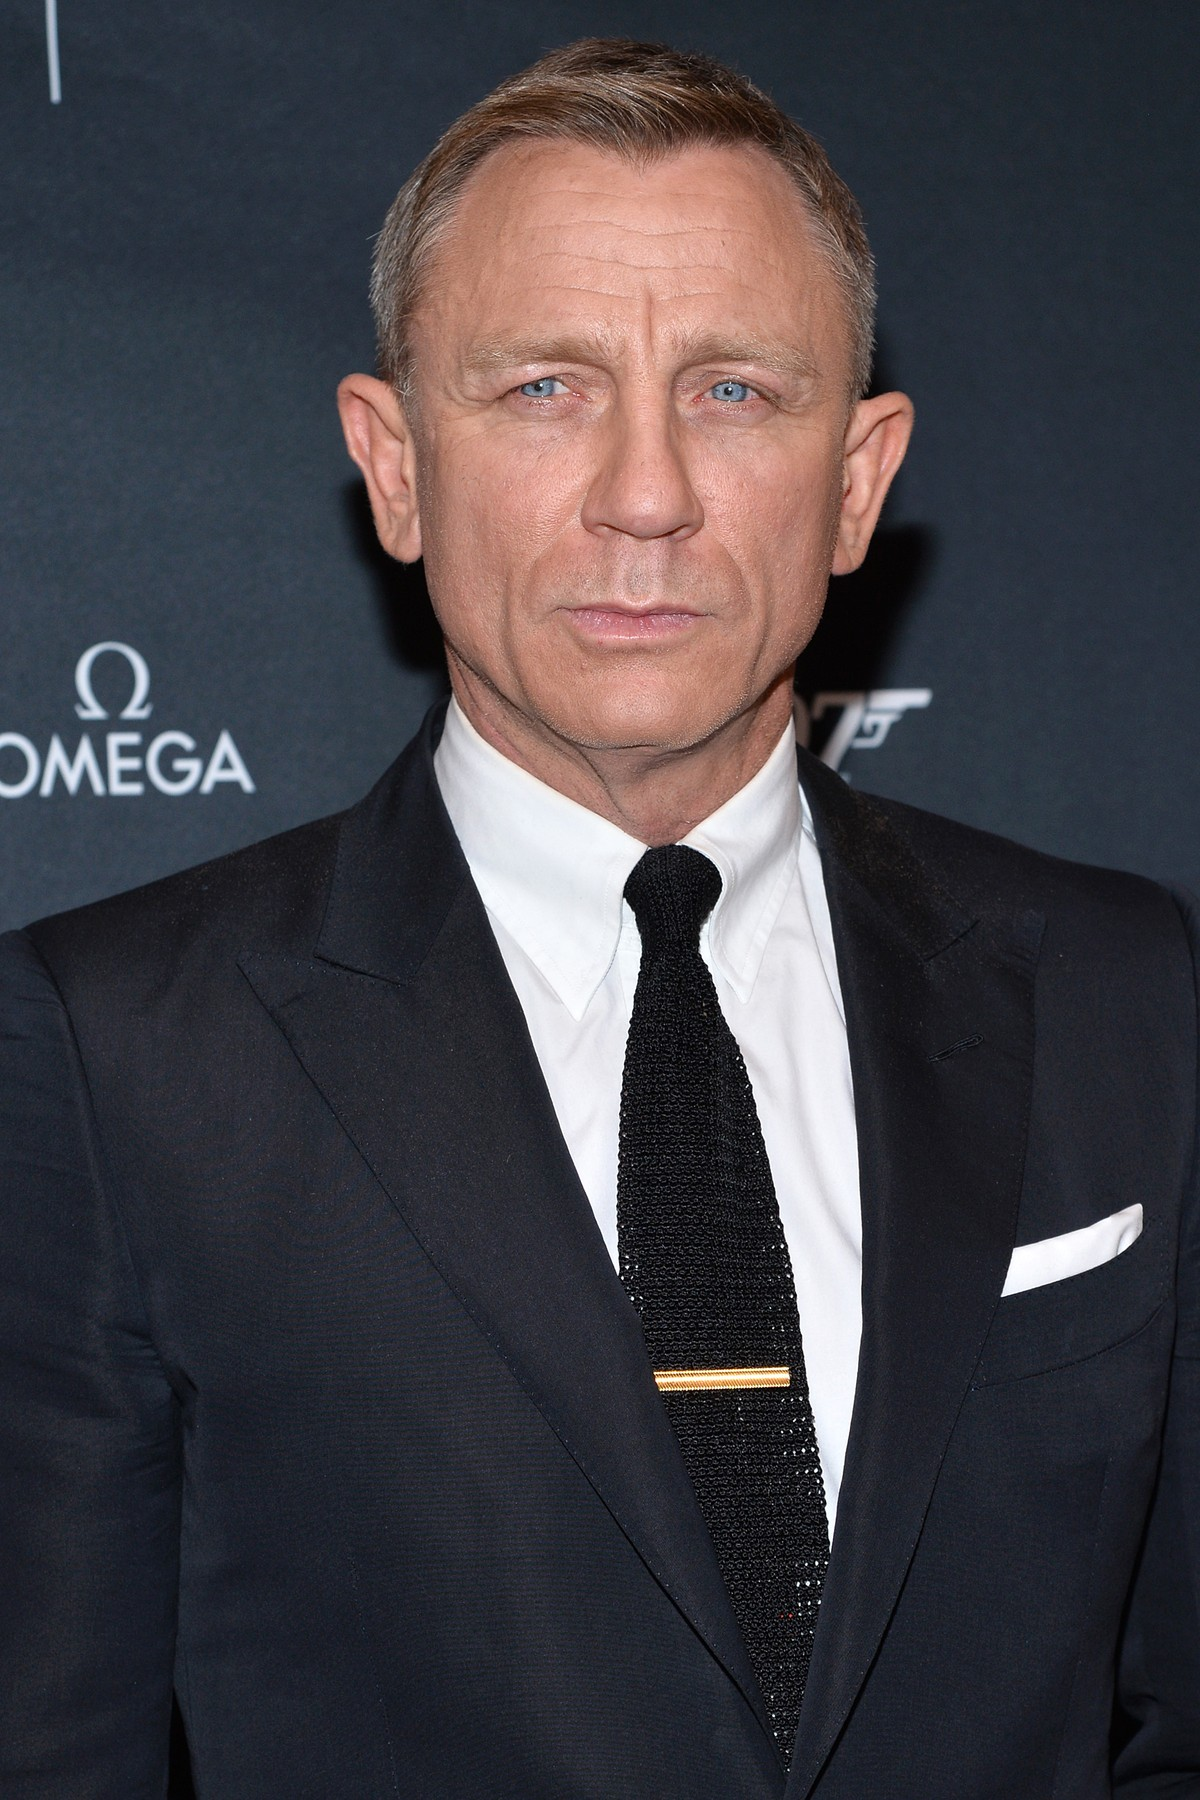 """Actor Daniel Craig attends the launch of the new """"Bond"""" watch by Omega in cunjuction with the upcoming 25th James Bond film """"No Time To Die"""", at The Standard High Line in New York, NY, December 4, 2019. Daniel Craig plays the fictional character James Bond created by author Ian Fleming.,Image: 486419936, License: Rights-managed, Restrictions: , Model Release: no, Credit line: Anthony Behar / ddp USA / Profimedia"""